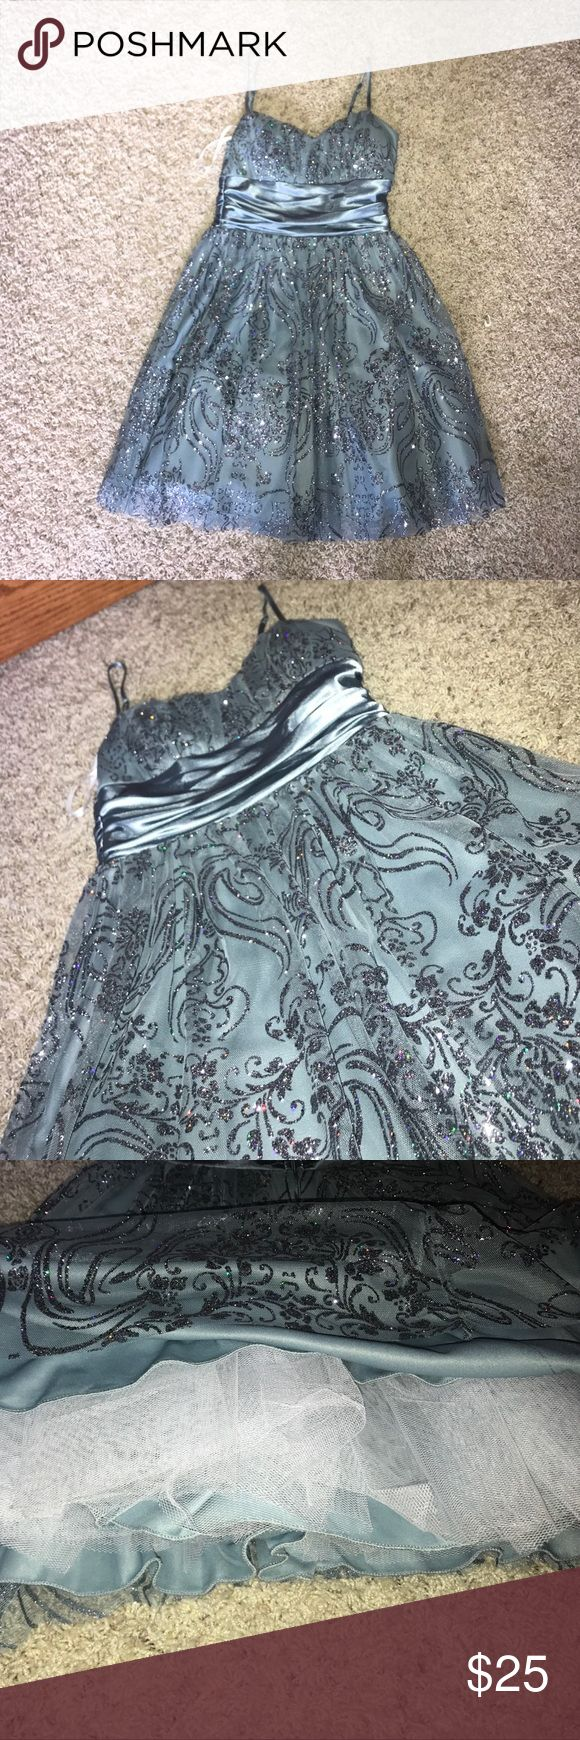 B Smart Homecoming Dress Perfect condition! Only worn once. Perfect for HOMECOMING or WINTER FORMAL!!! Beautiful icy blue color. Size 5 B Smart Dresses Asymmetrical